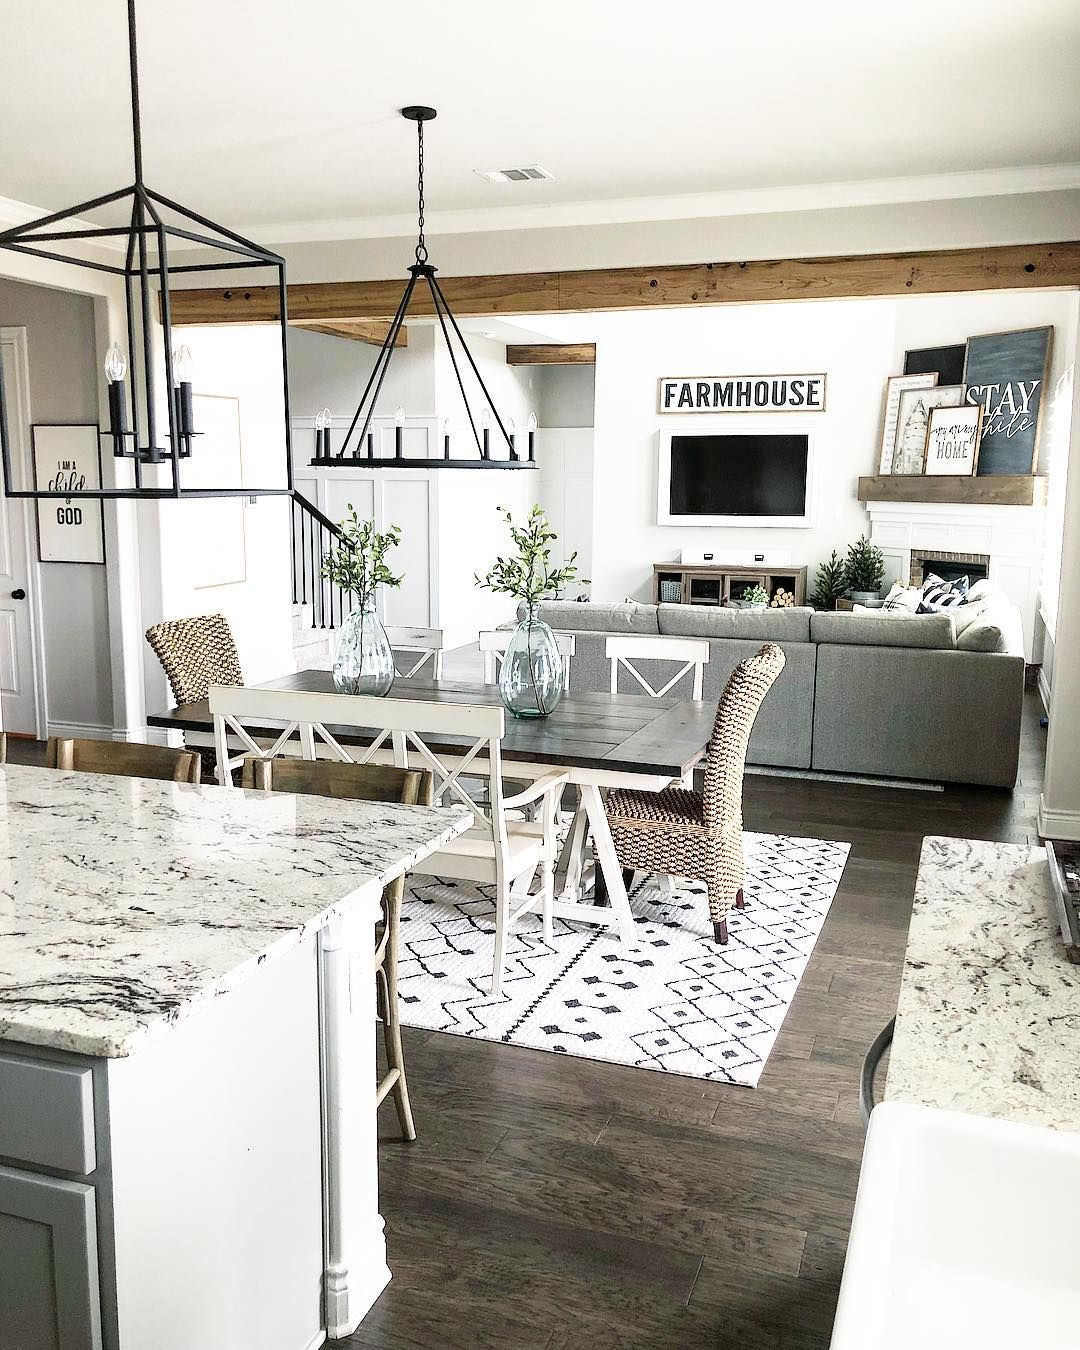 4 027 Likes 118 Comments Holly Our Faux Farmhouse